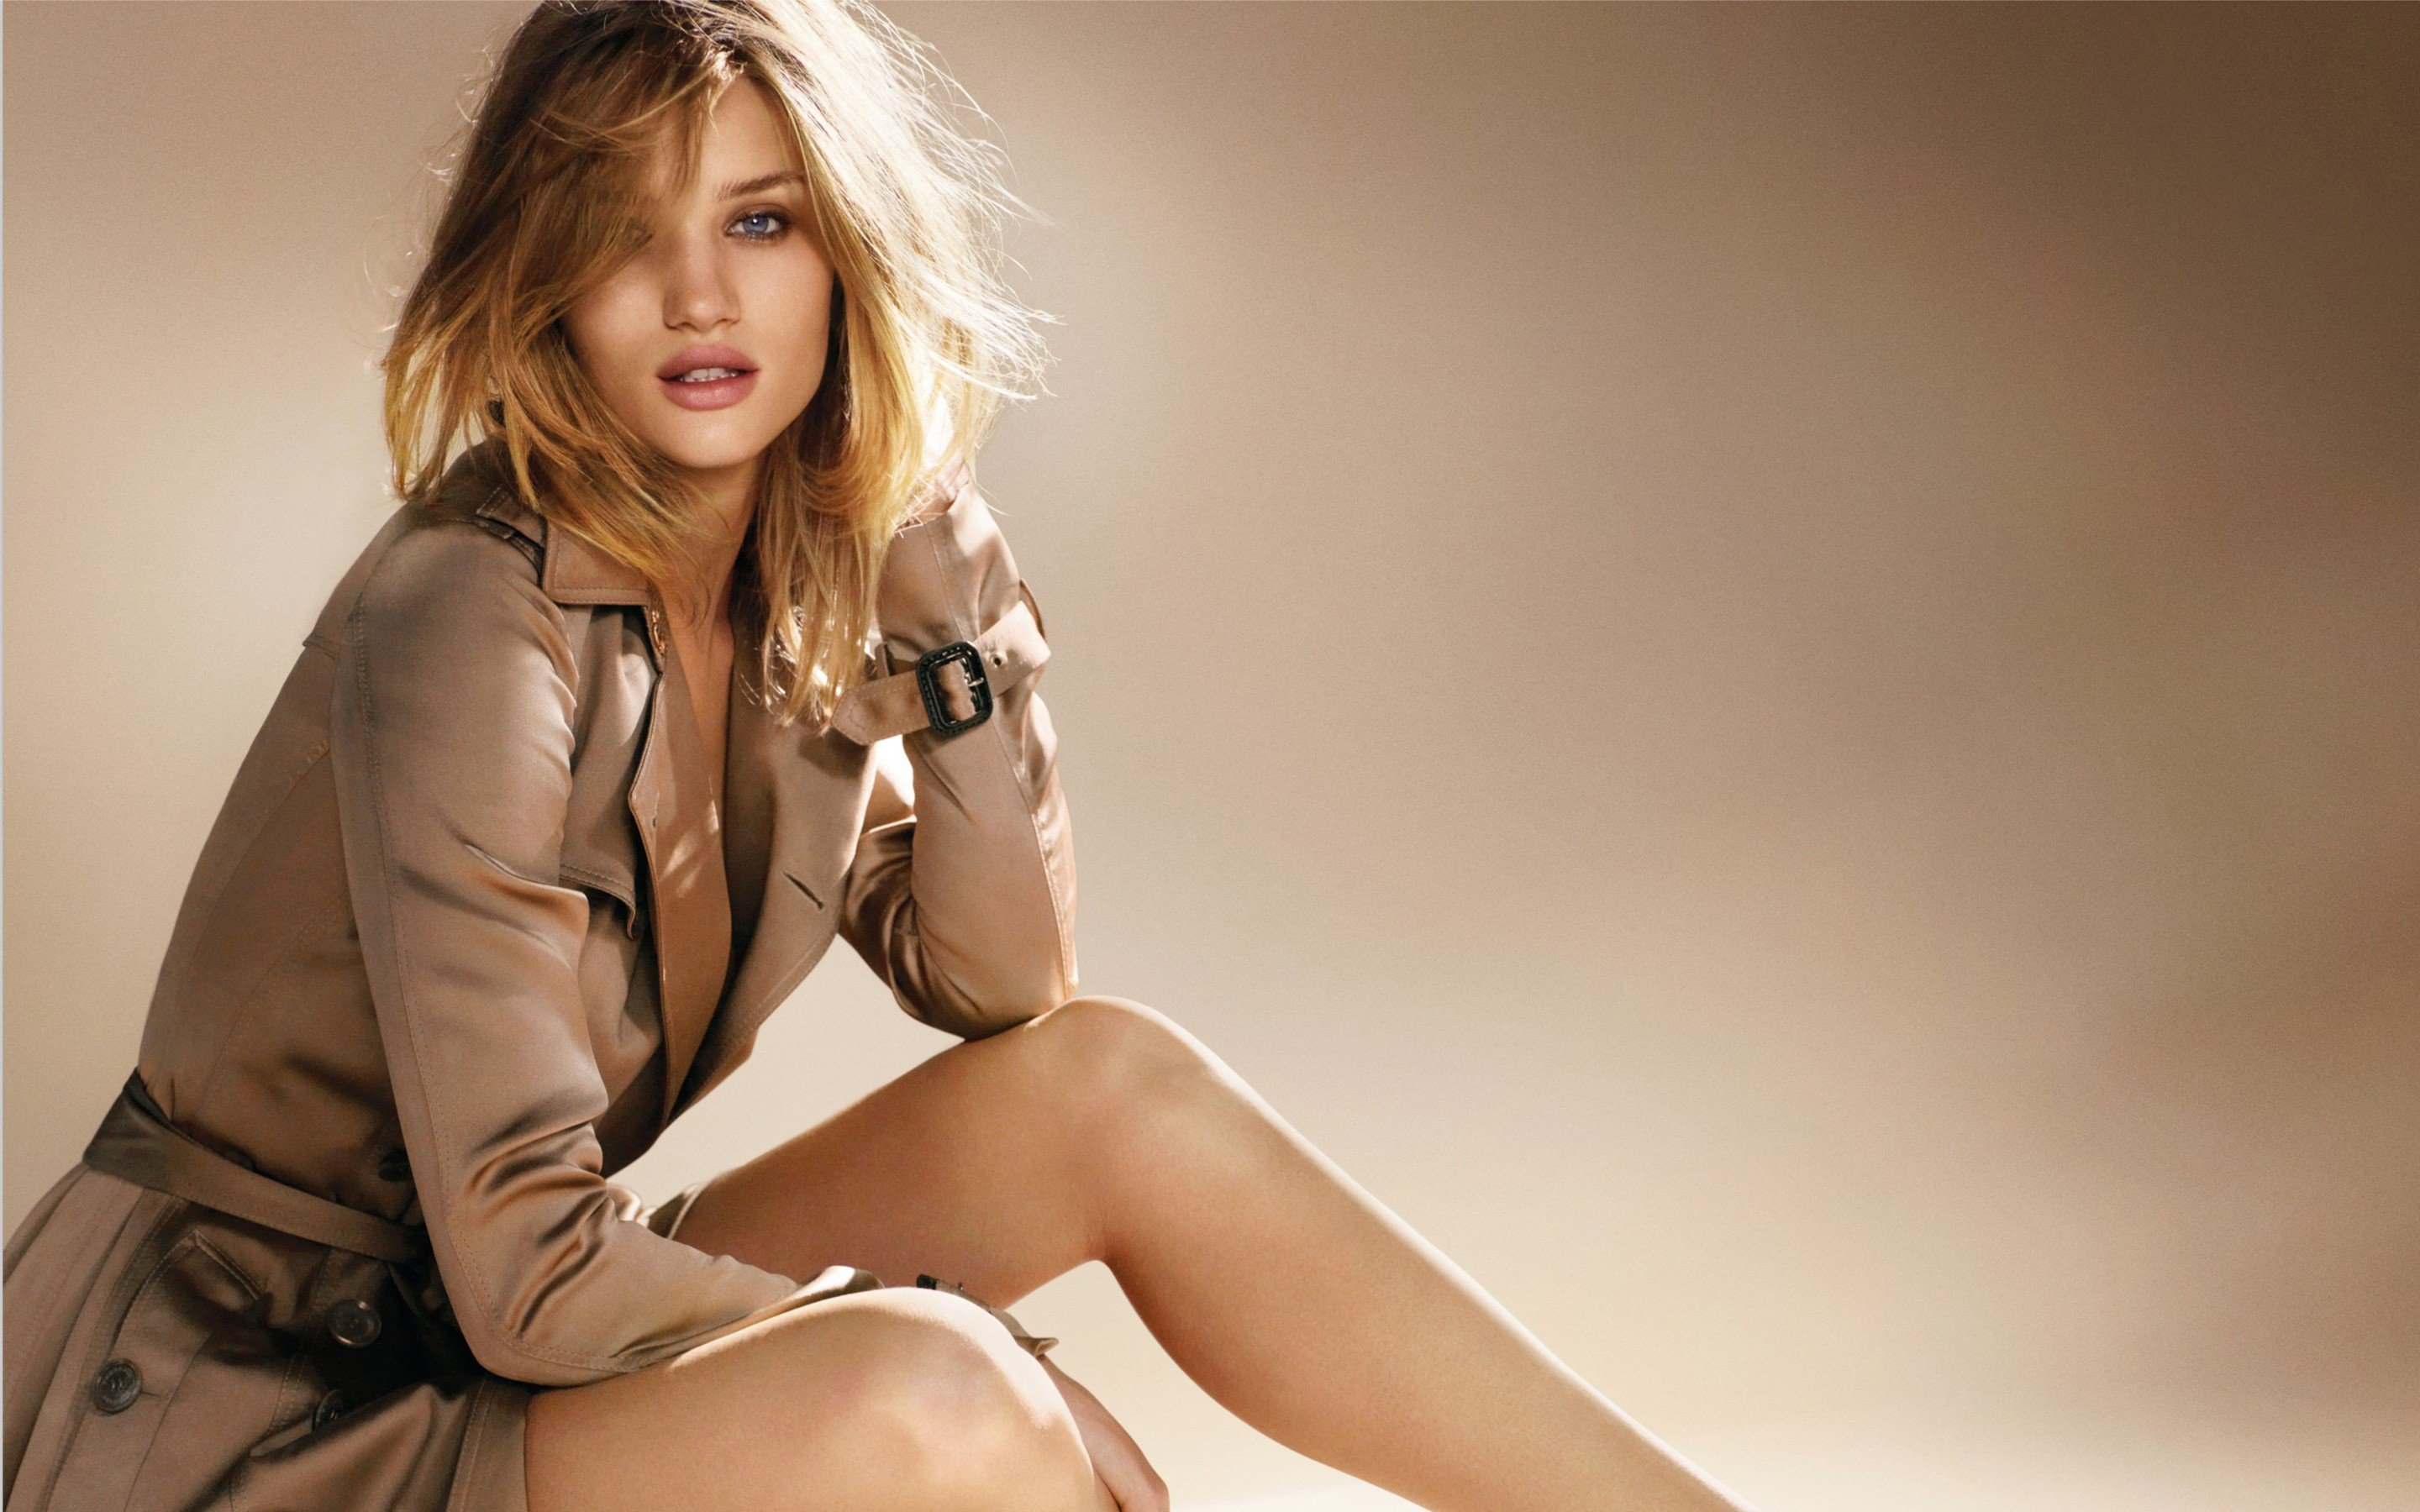 360 rosie-huntington-whiteley-wallpapers, celebrities-wallpapers ... Rosie Huntington Whiteley